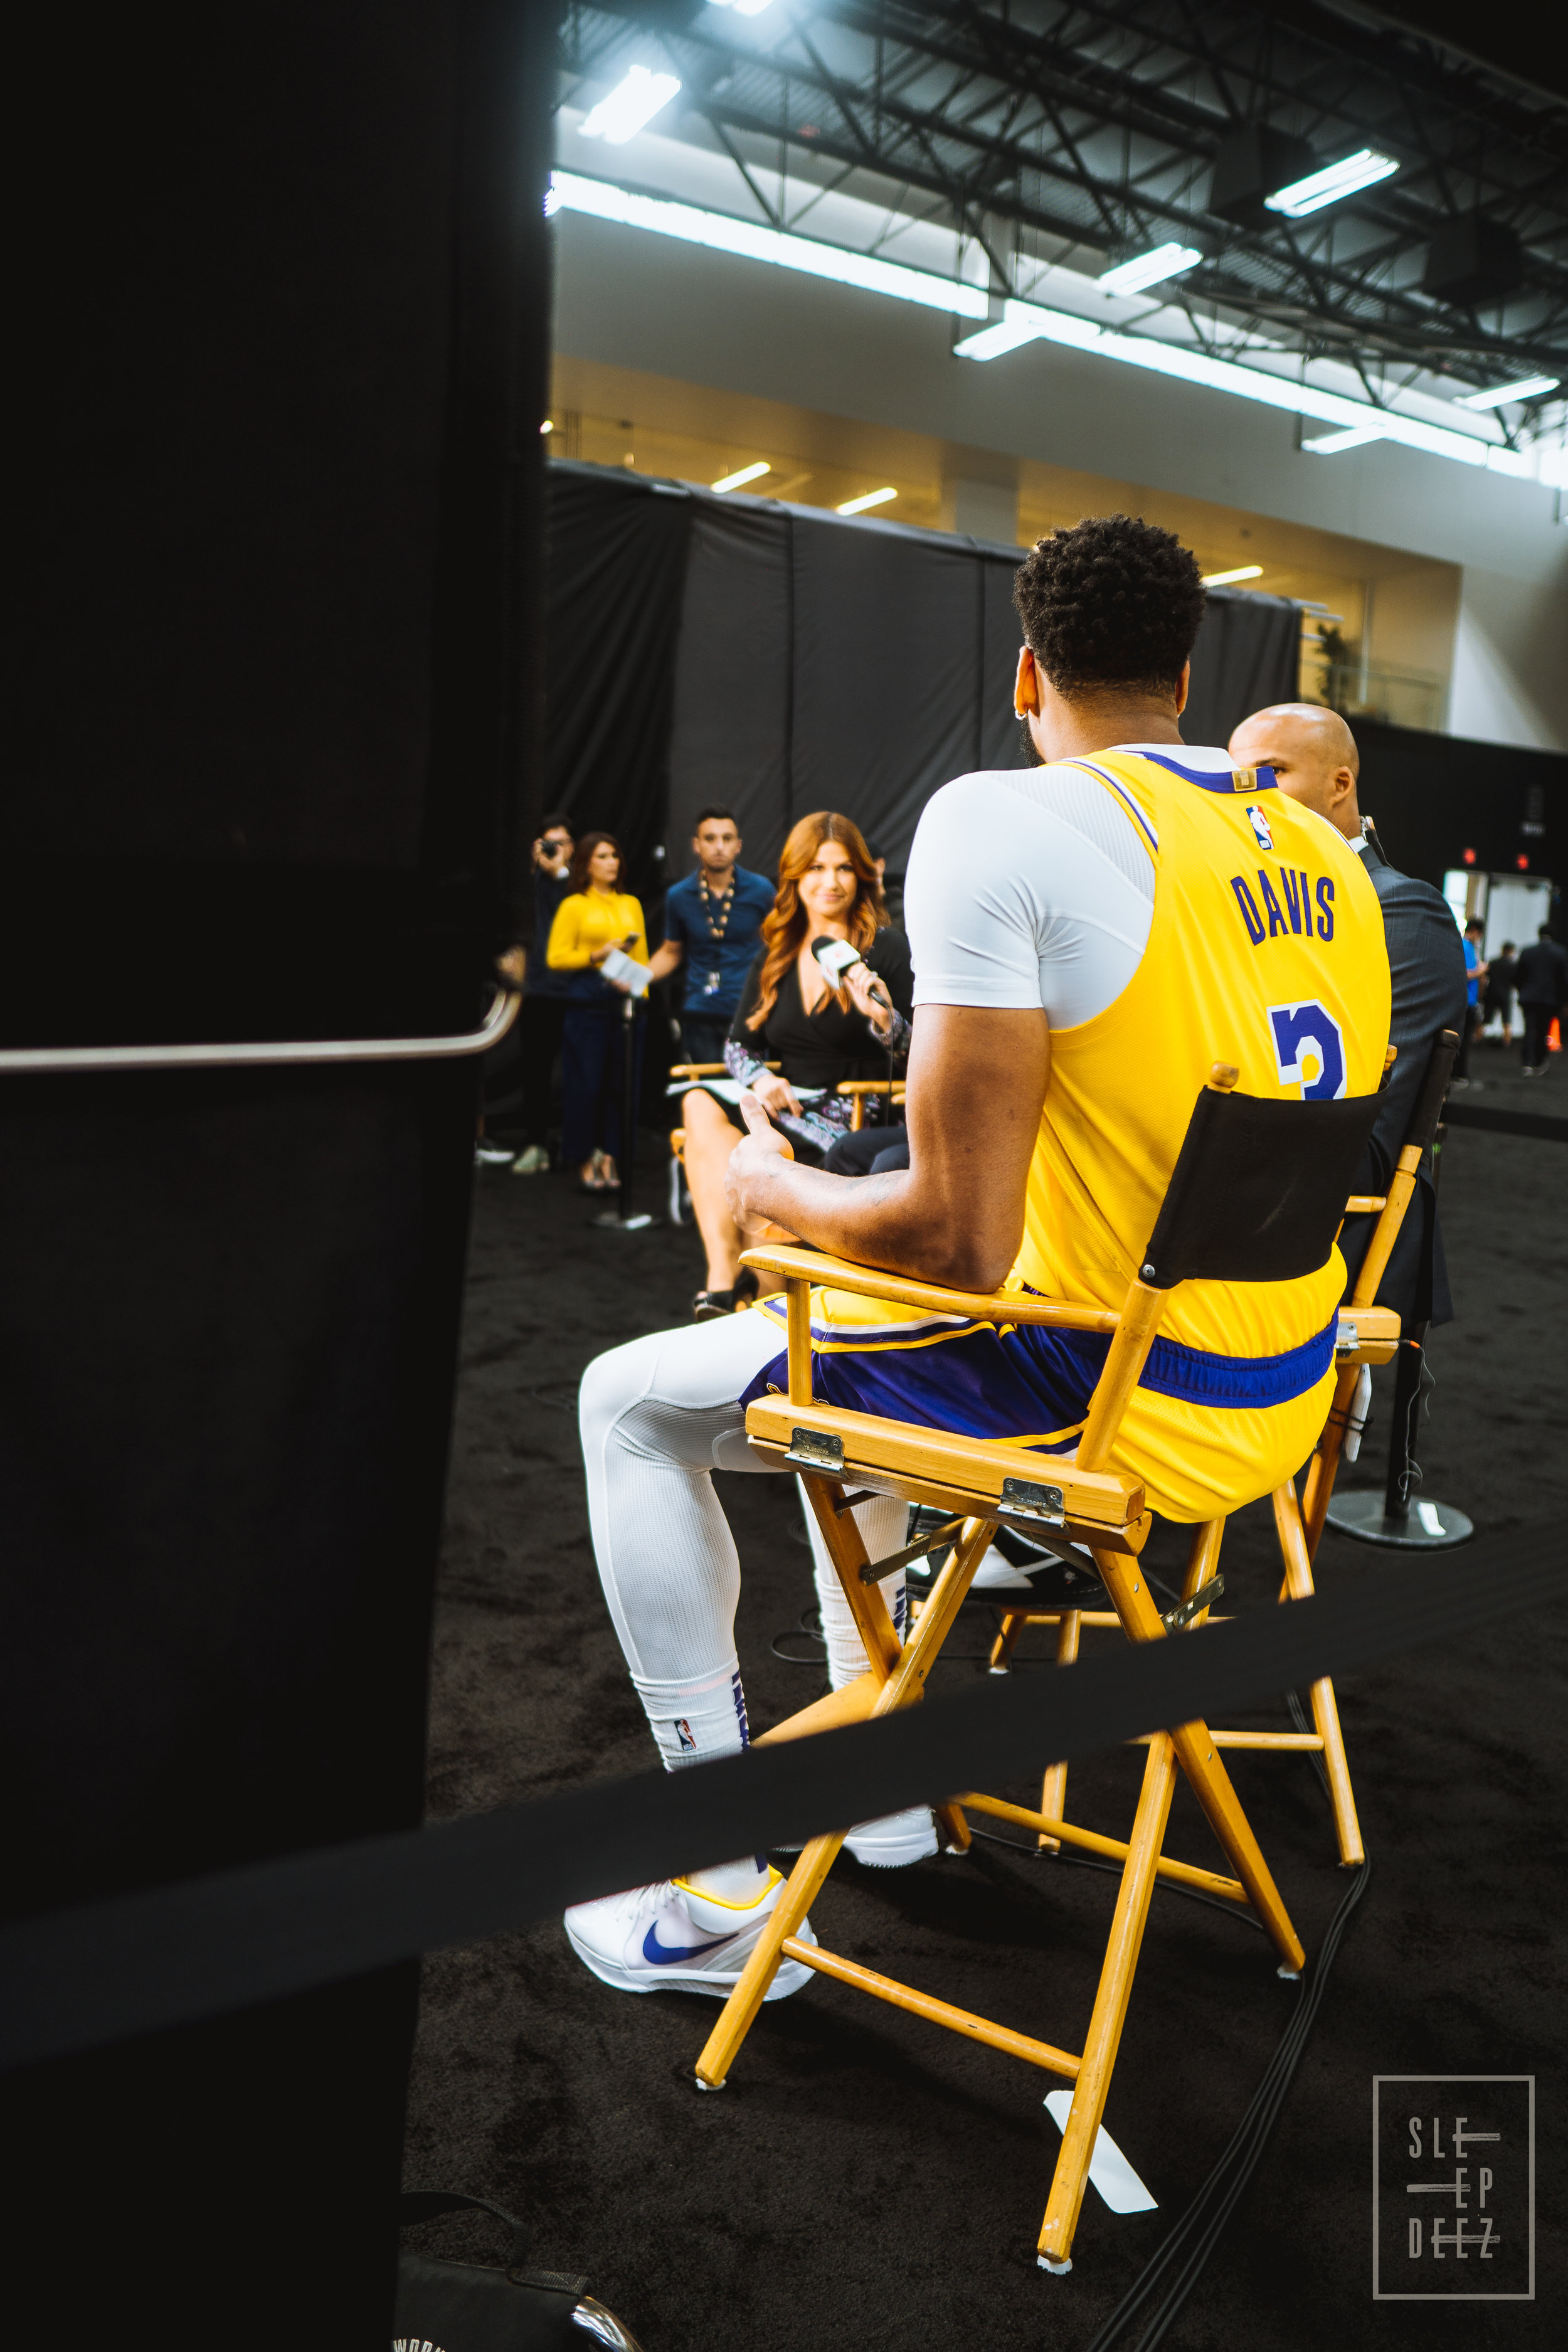 """Lakers biggest summer acquisition Anthony Davis sits down on ESPN's """"The Jump"""" with Racheal Nichols and Richard Jefferson. (Photo Credit: @Sleepvision)"""